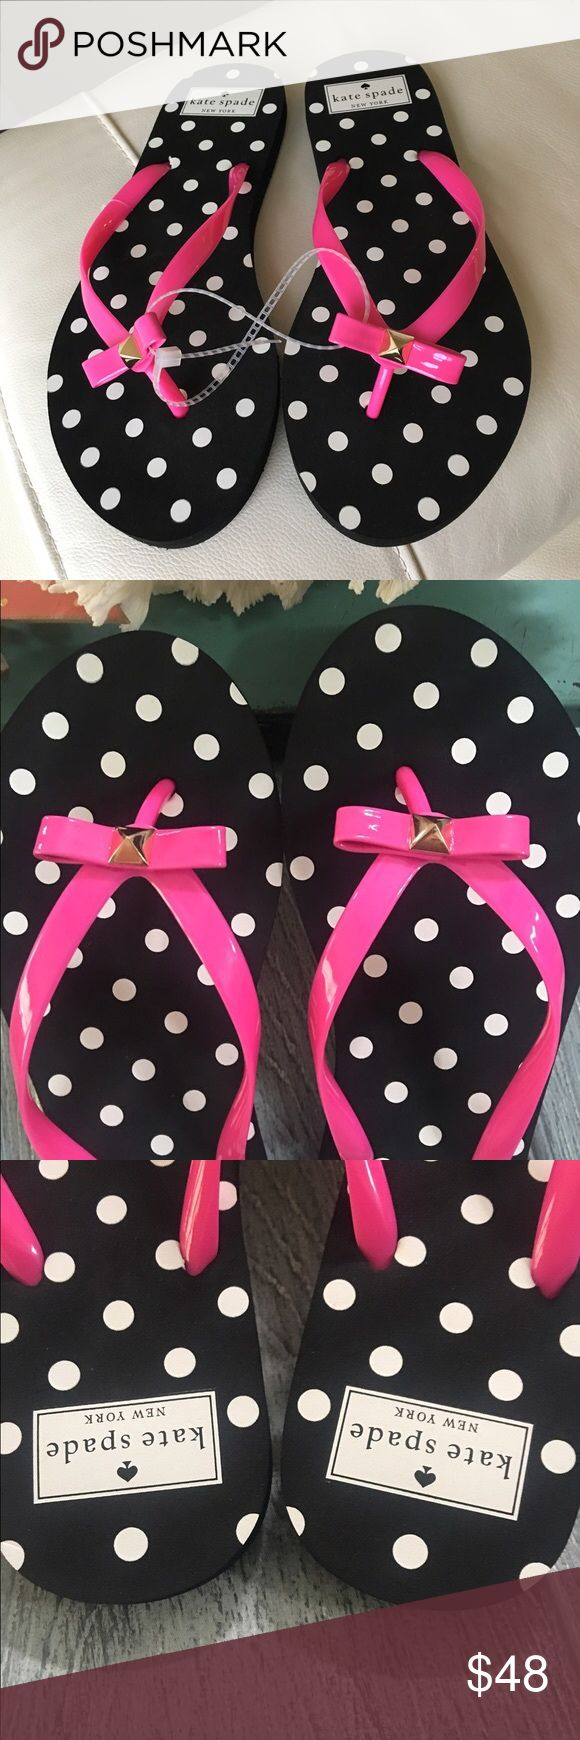 SALE!💕 Kate Spade Pink black polka dot flip flops Super Cute Kate Spade New York pink flip flops with black polka dot soles! They are new without Box in. A Sz 7 women's! kate spade Shoes Sandals